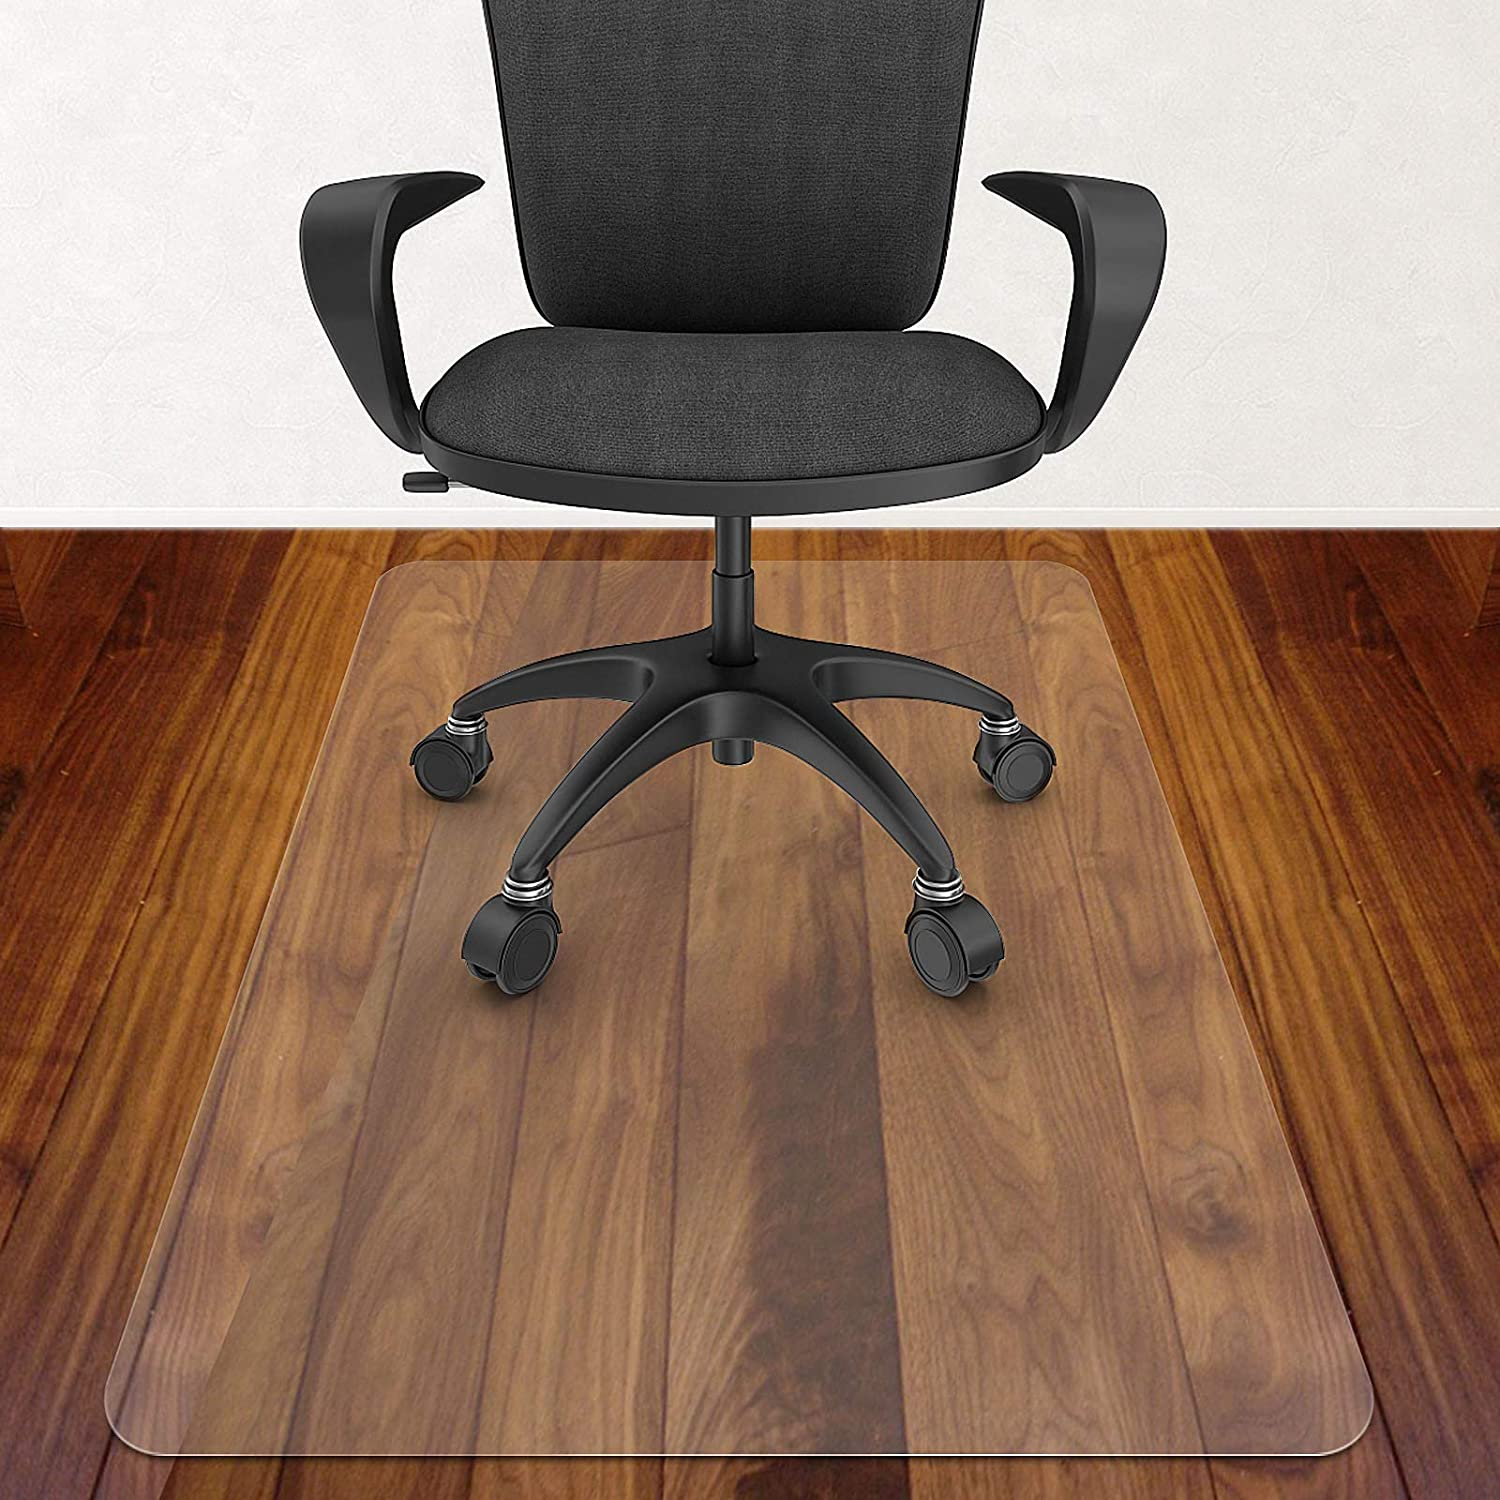 Azadx Home Office Chair Mat 30'' x 48'', Transparent Hard Floors Protector Rectangle, Office Chair Mats for Hard Surfaces (30 x 48'' Rectangle): Kitchen & Dining